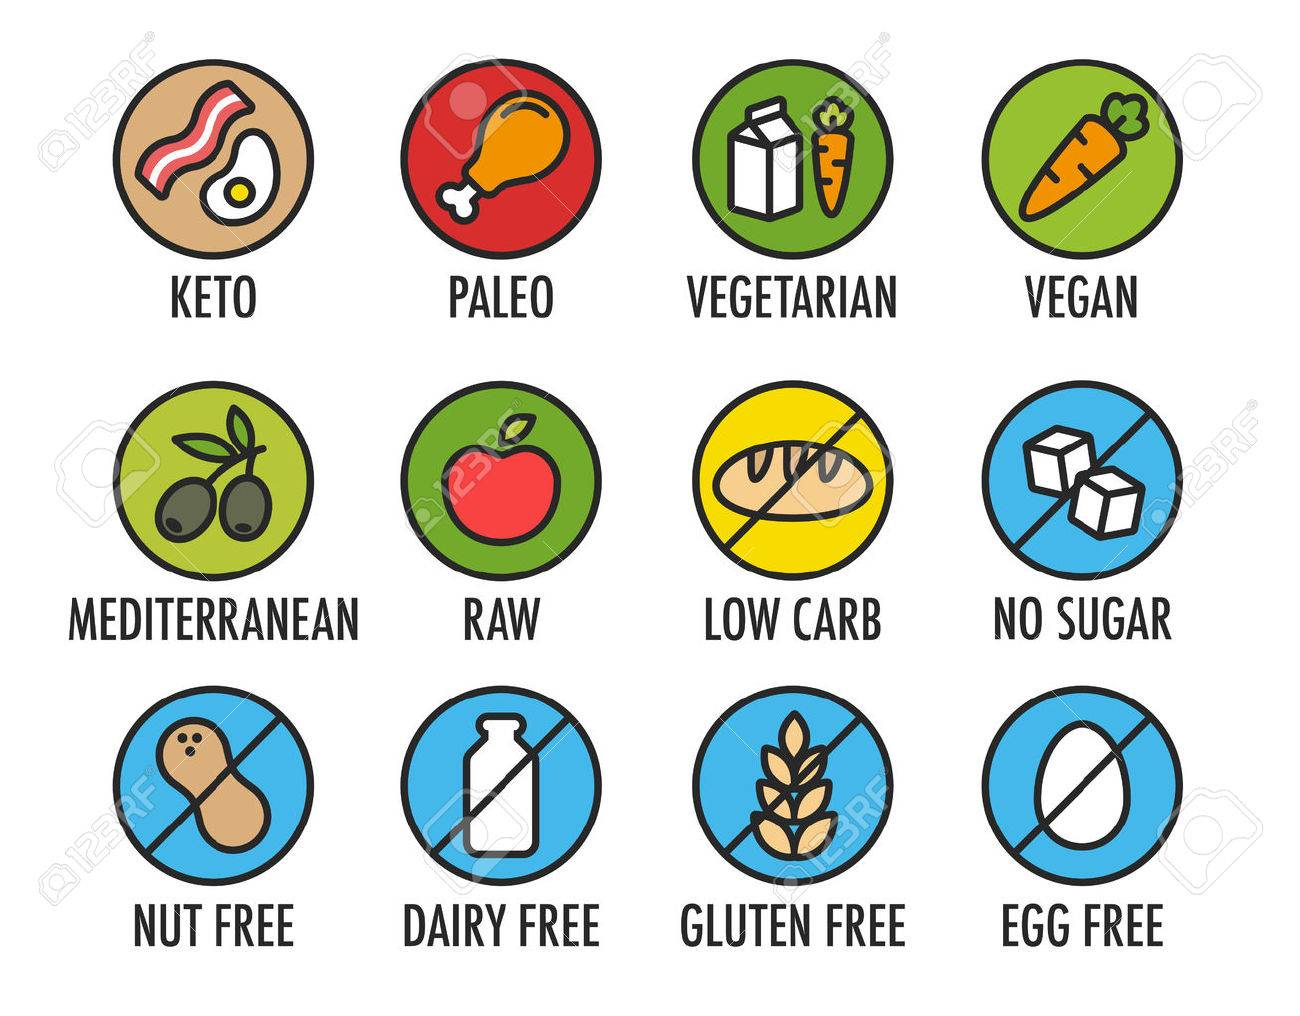 Set of colorful round icons of various diets and ingredient labels. Including ketogenic paleolitic vegetarian vegan and more. - 41794504